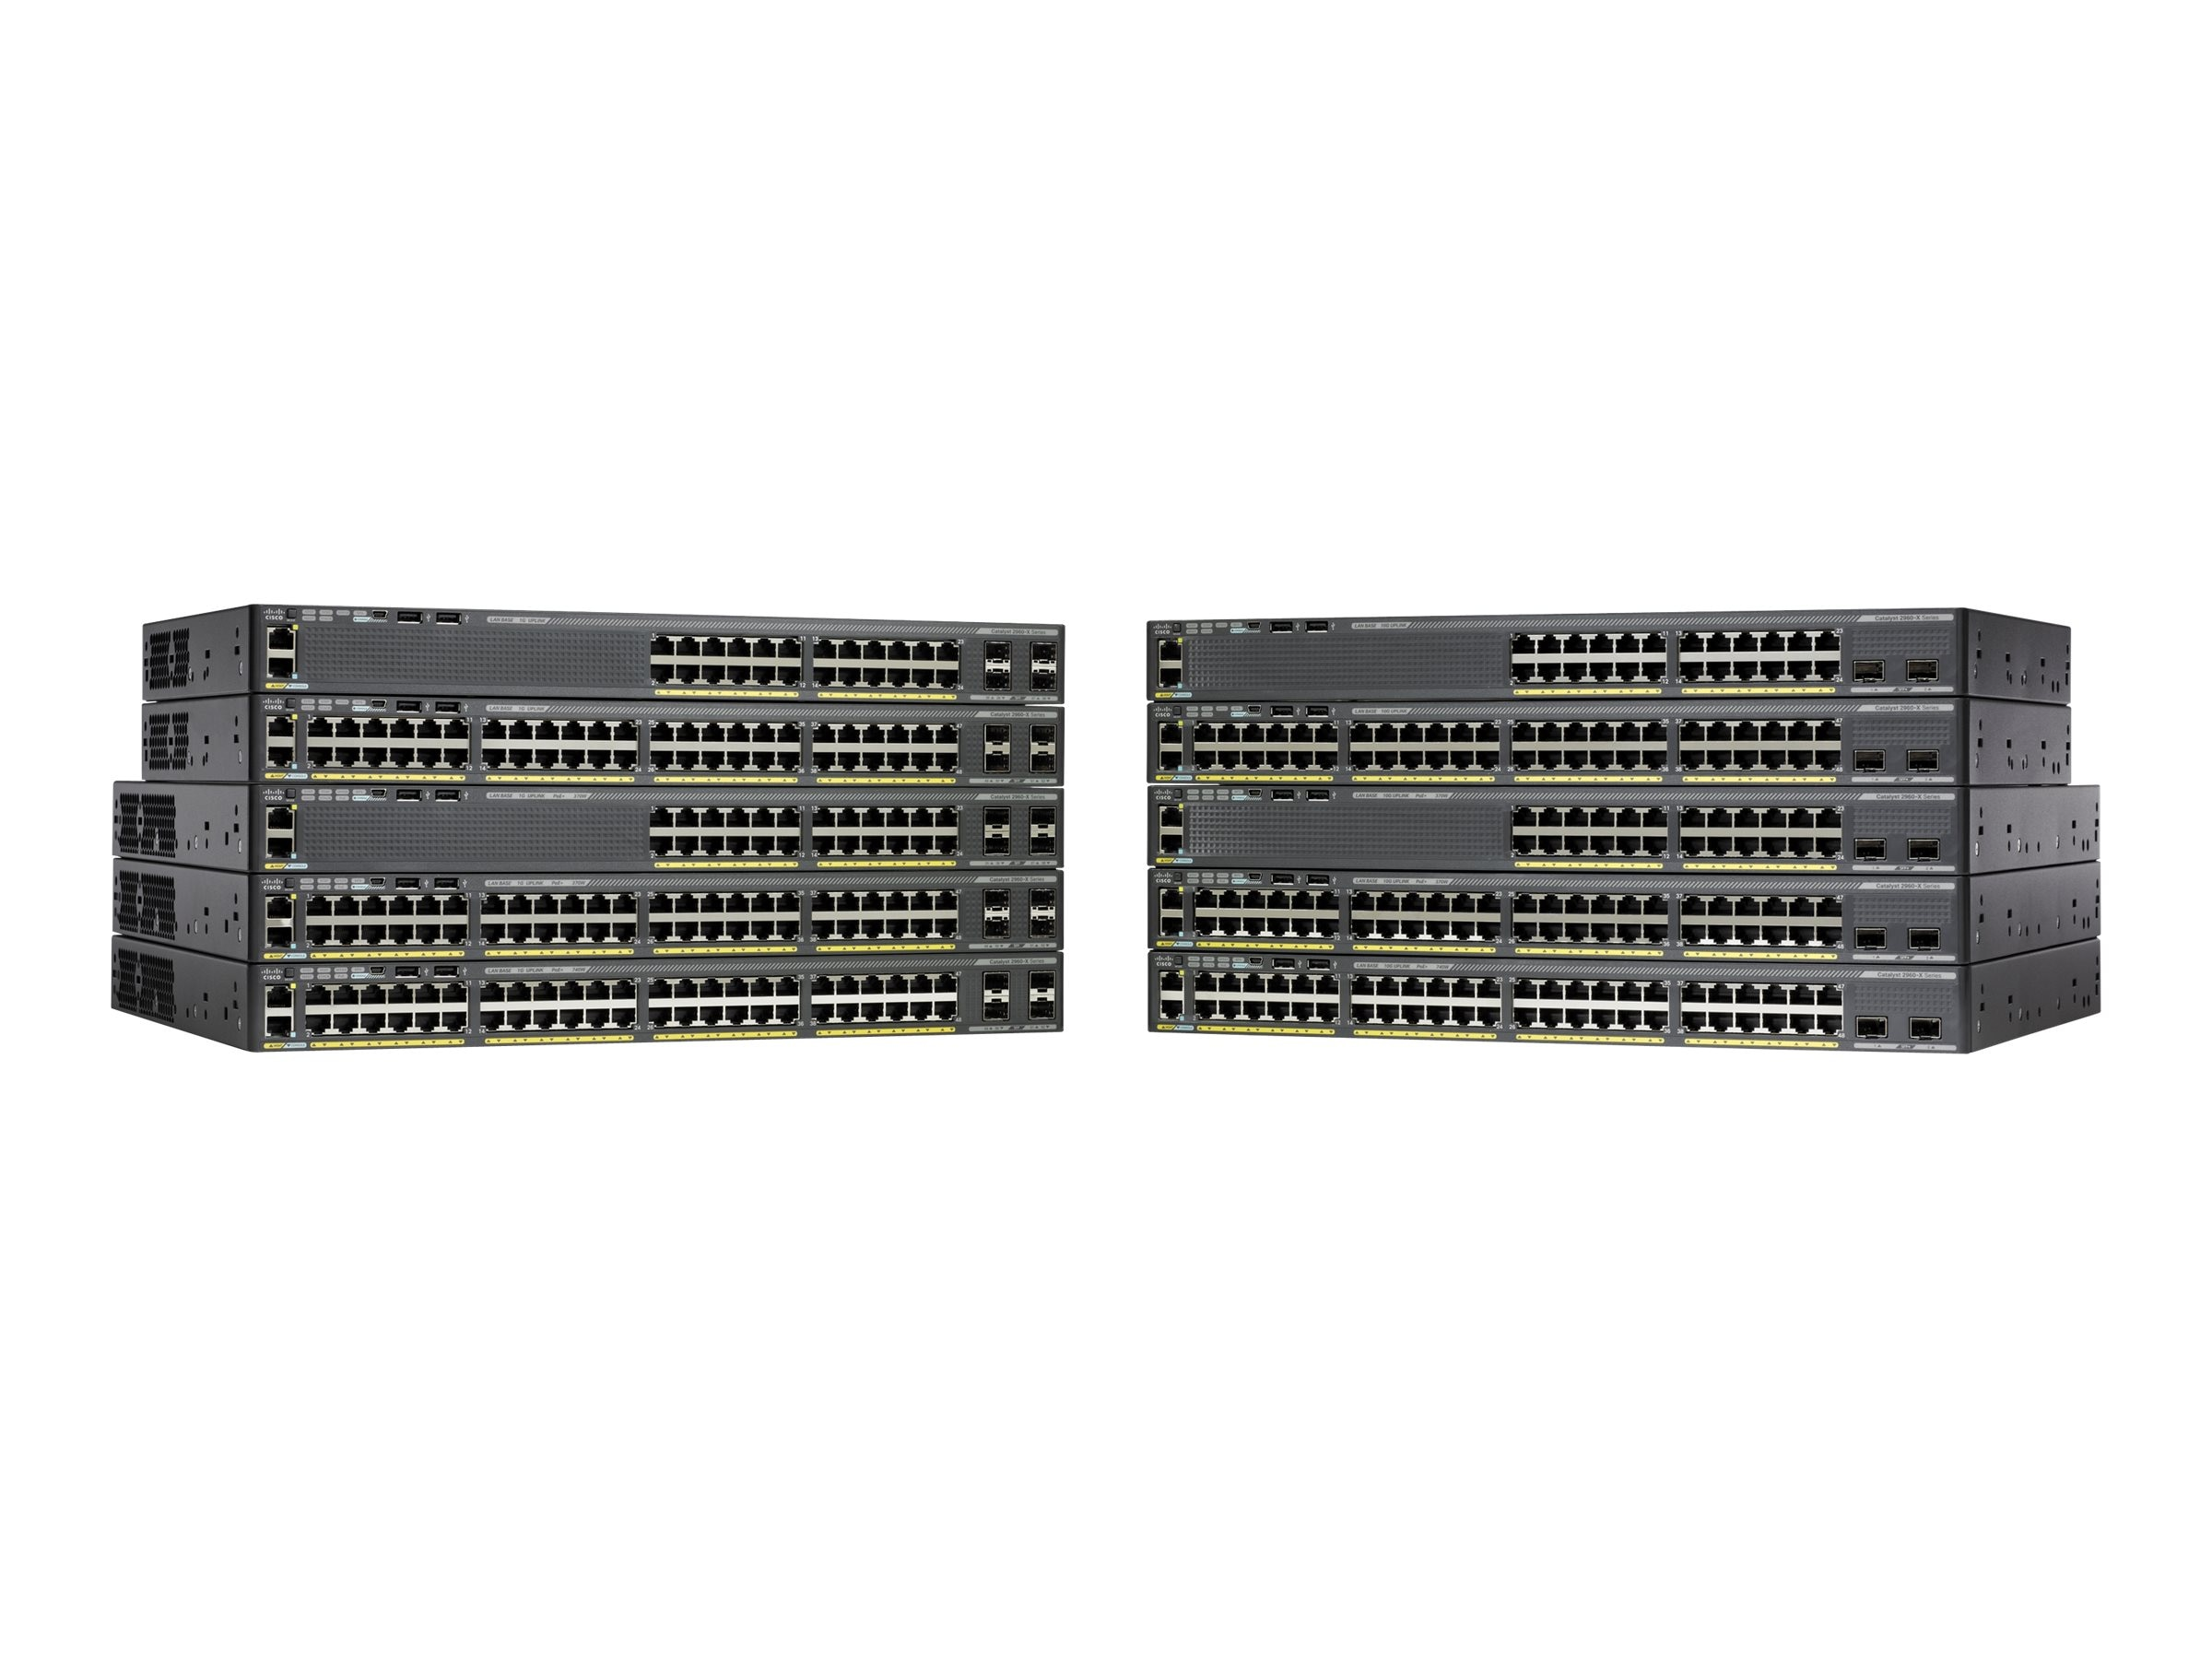 Cisco Catalyst 2960-X 48 GIGE POE 740W 2X SFP, WS-C2960X-48FPD-L, 15954755, Network Switches